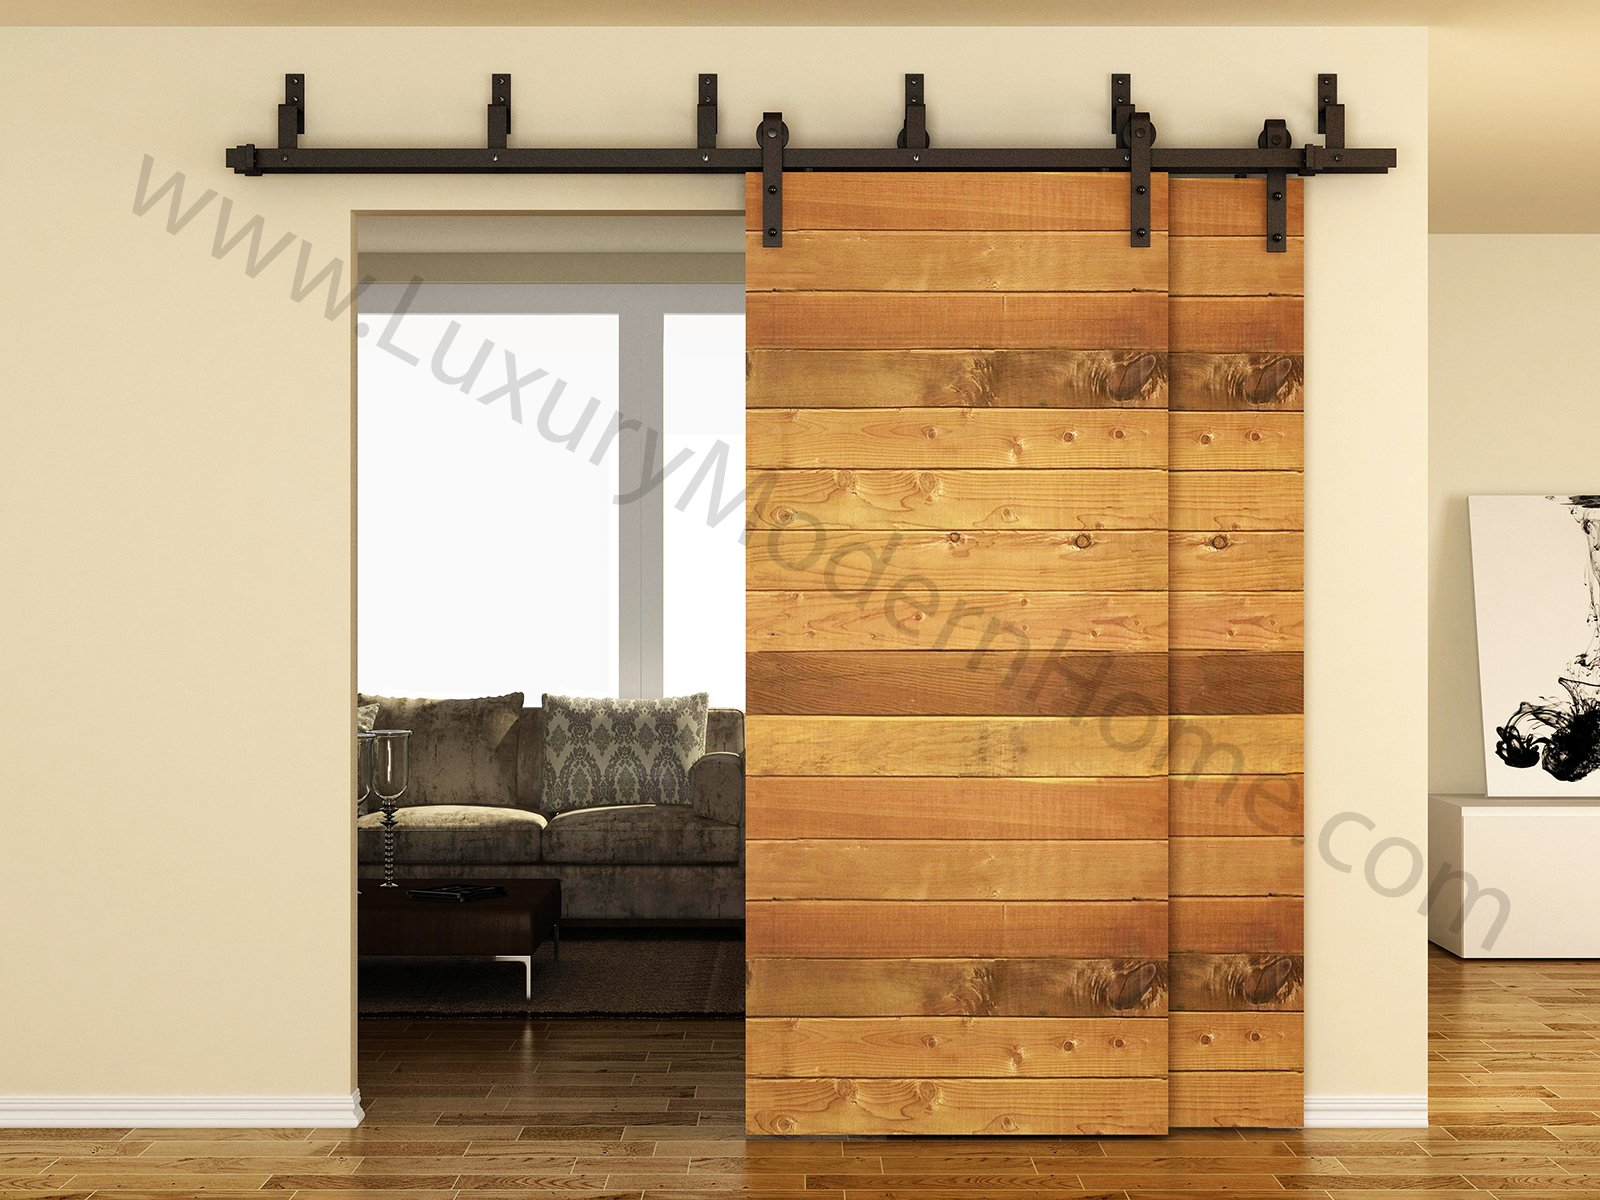 sbd BYPASS - AUSTIN - 8' feet - 98'' 2.5 m Rail BYPASS Sliding Barn Door Hardware Rustic Antique Classic Country Dark Coffee Track Rail Steel Extra Long by LuxuryModernHome (Image #3)